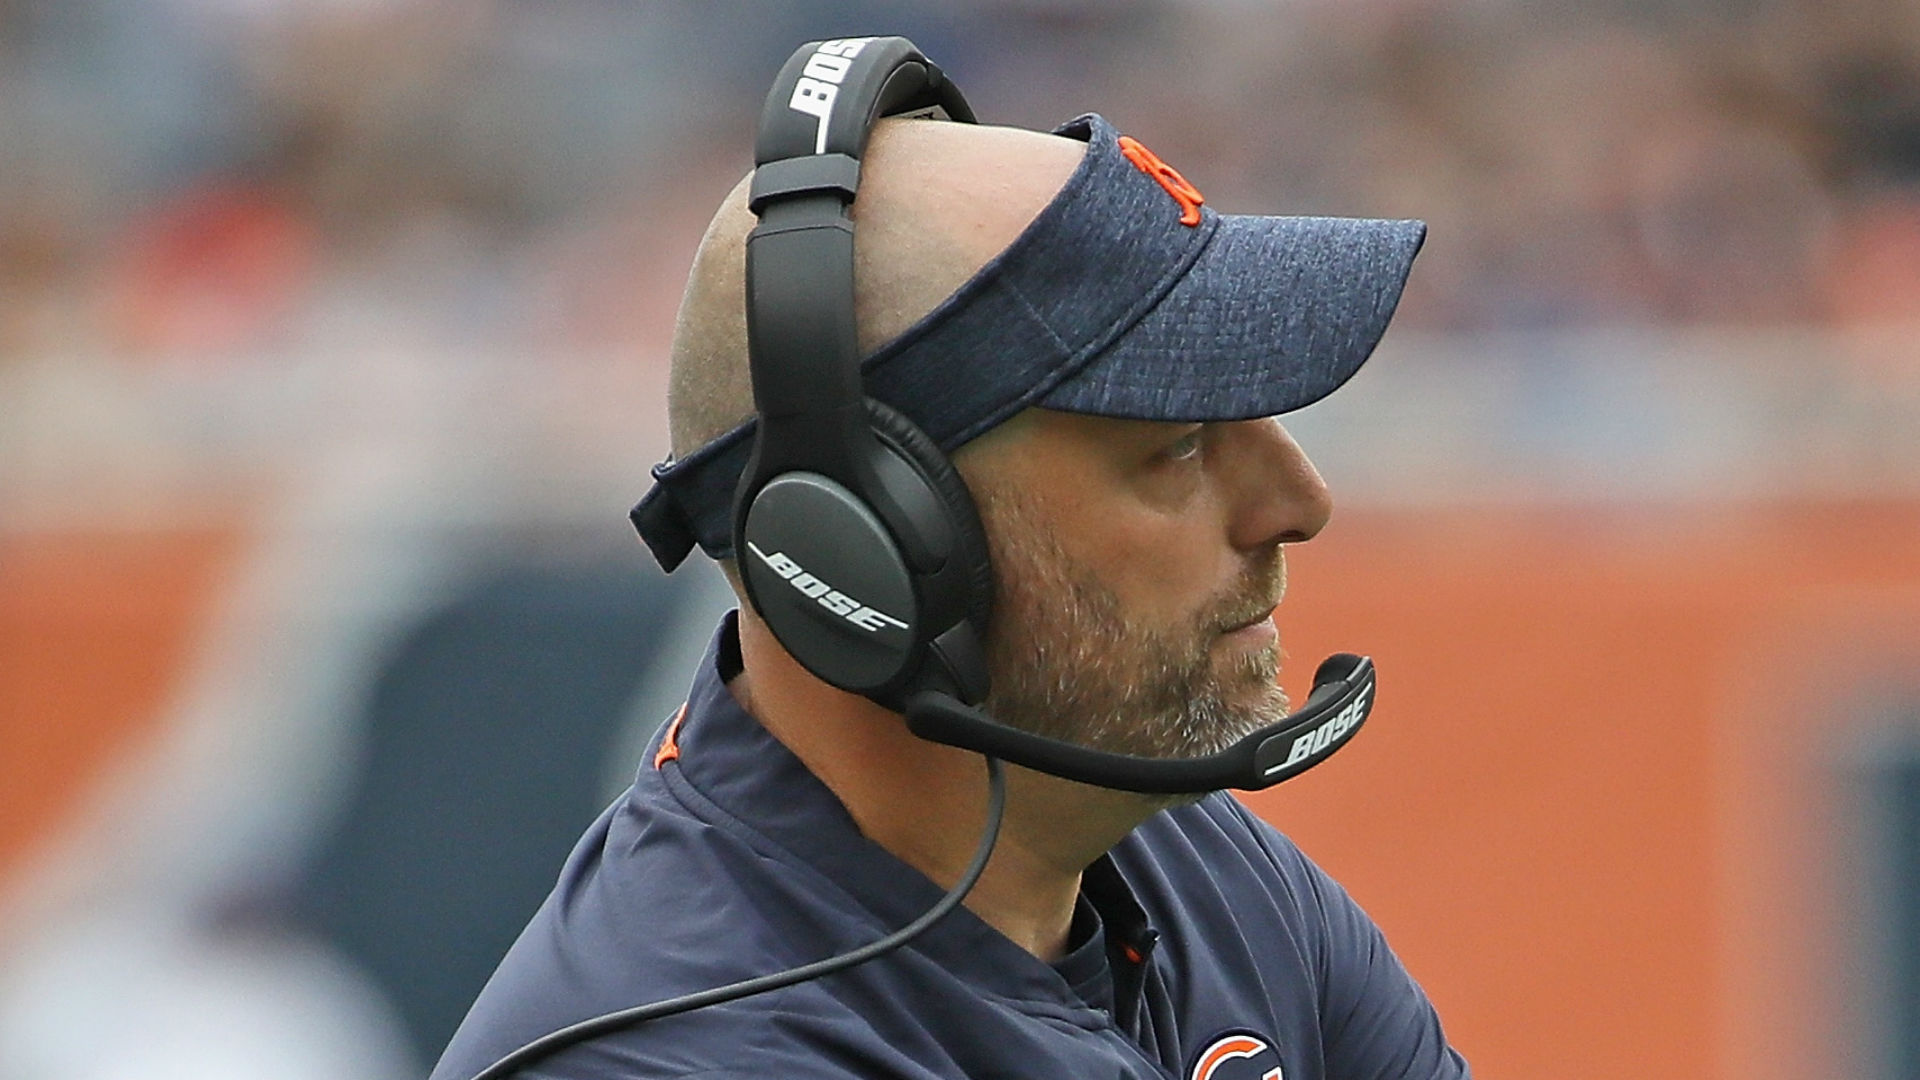 Bears implement 'Augusta silence' to help choose new kicker